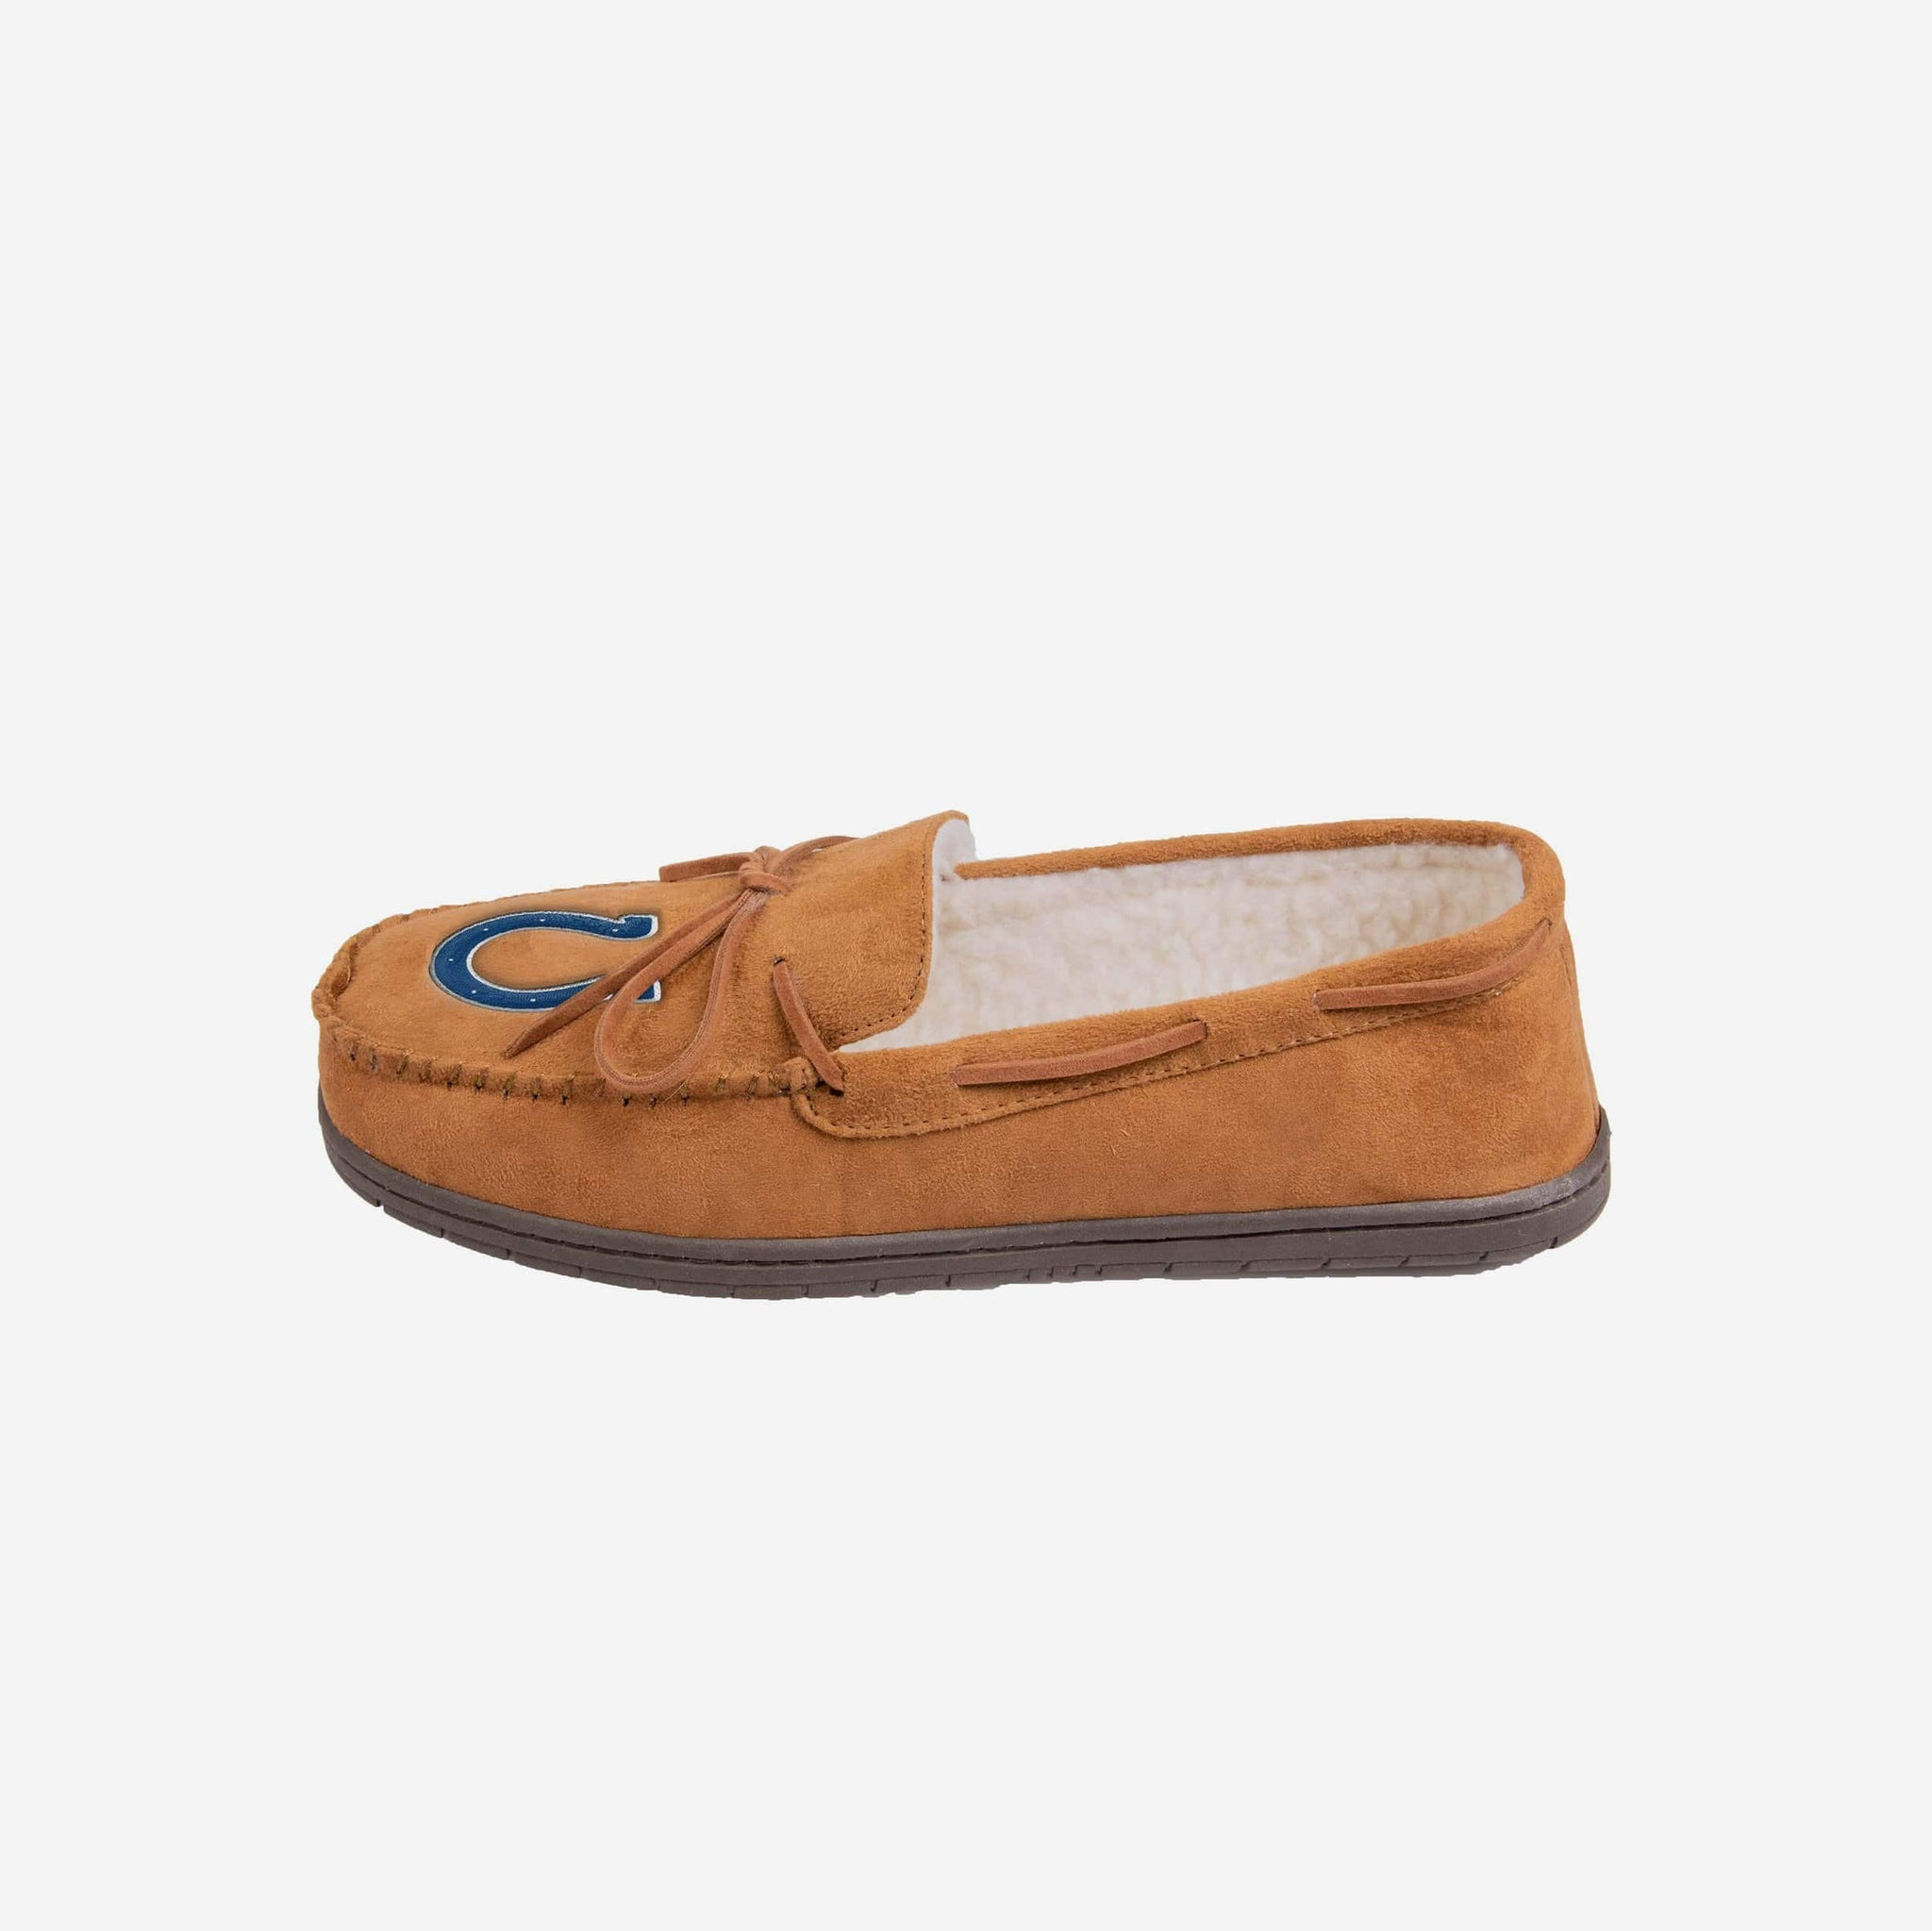 dad2af49 Indianapolis Colts Moccasin Slipper - S